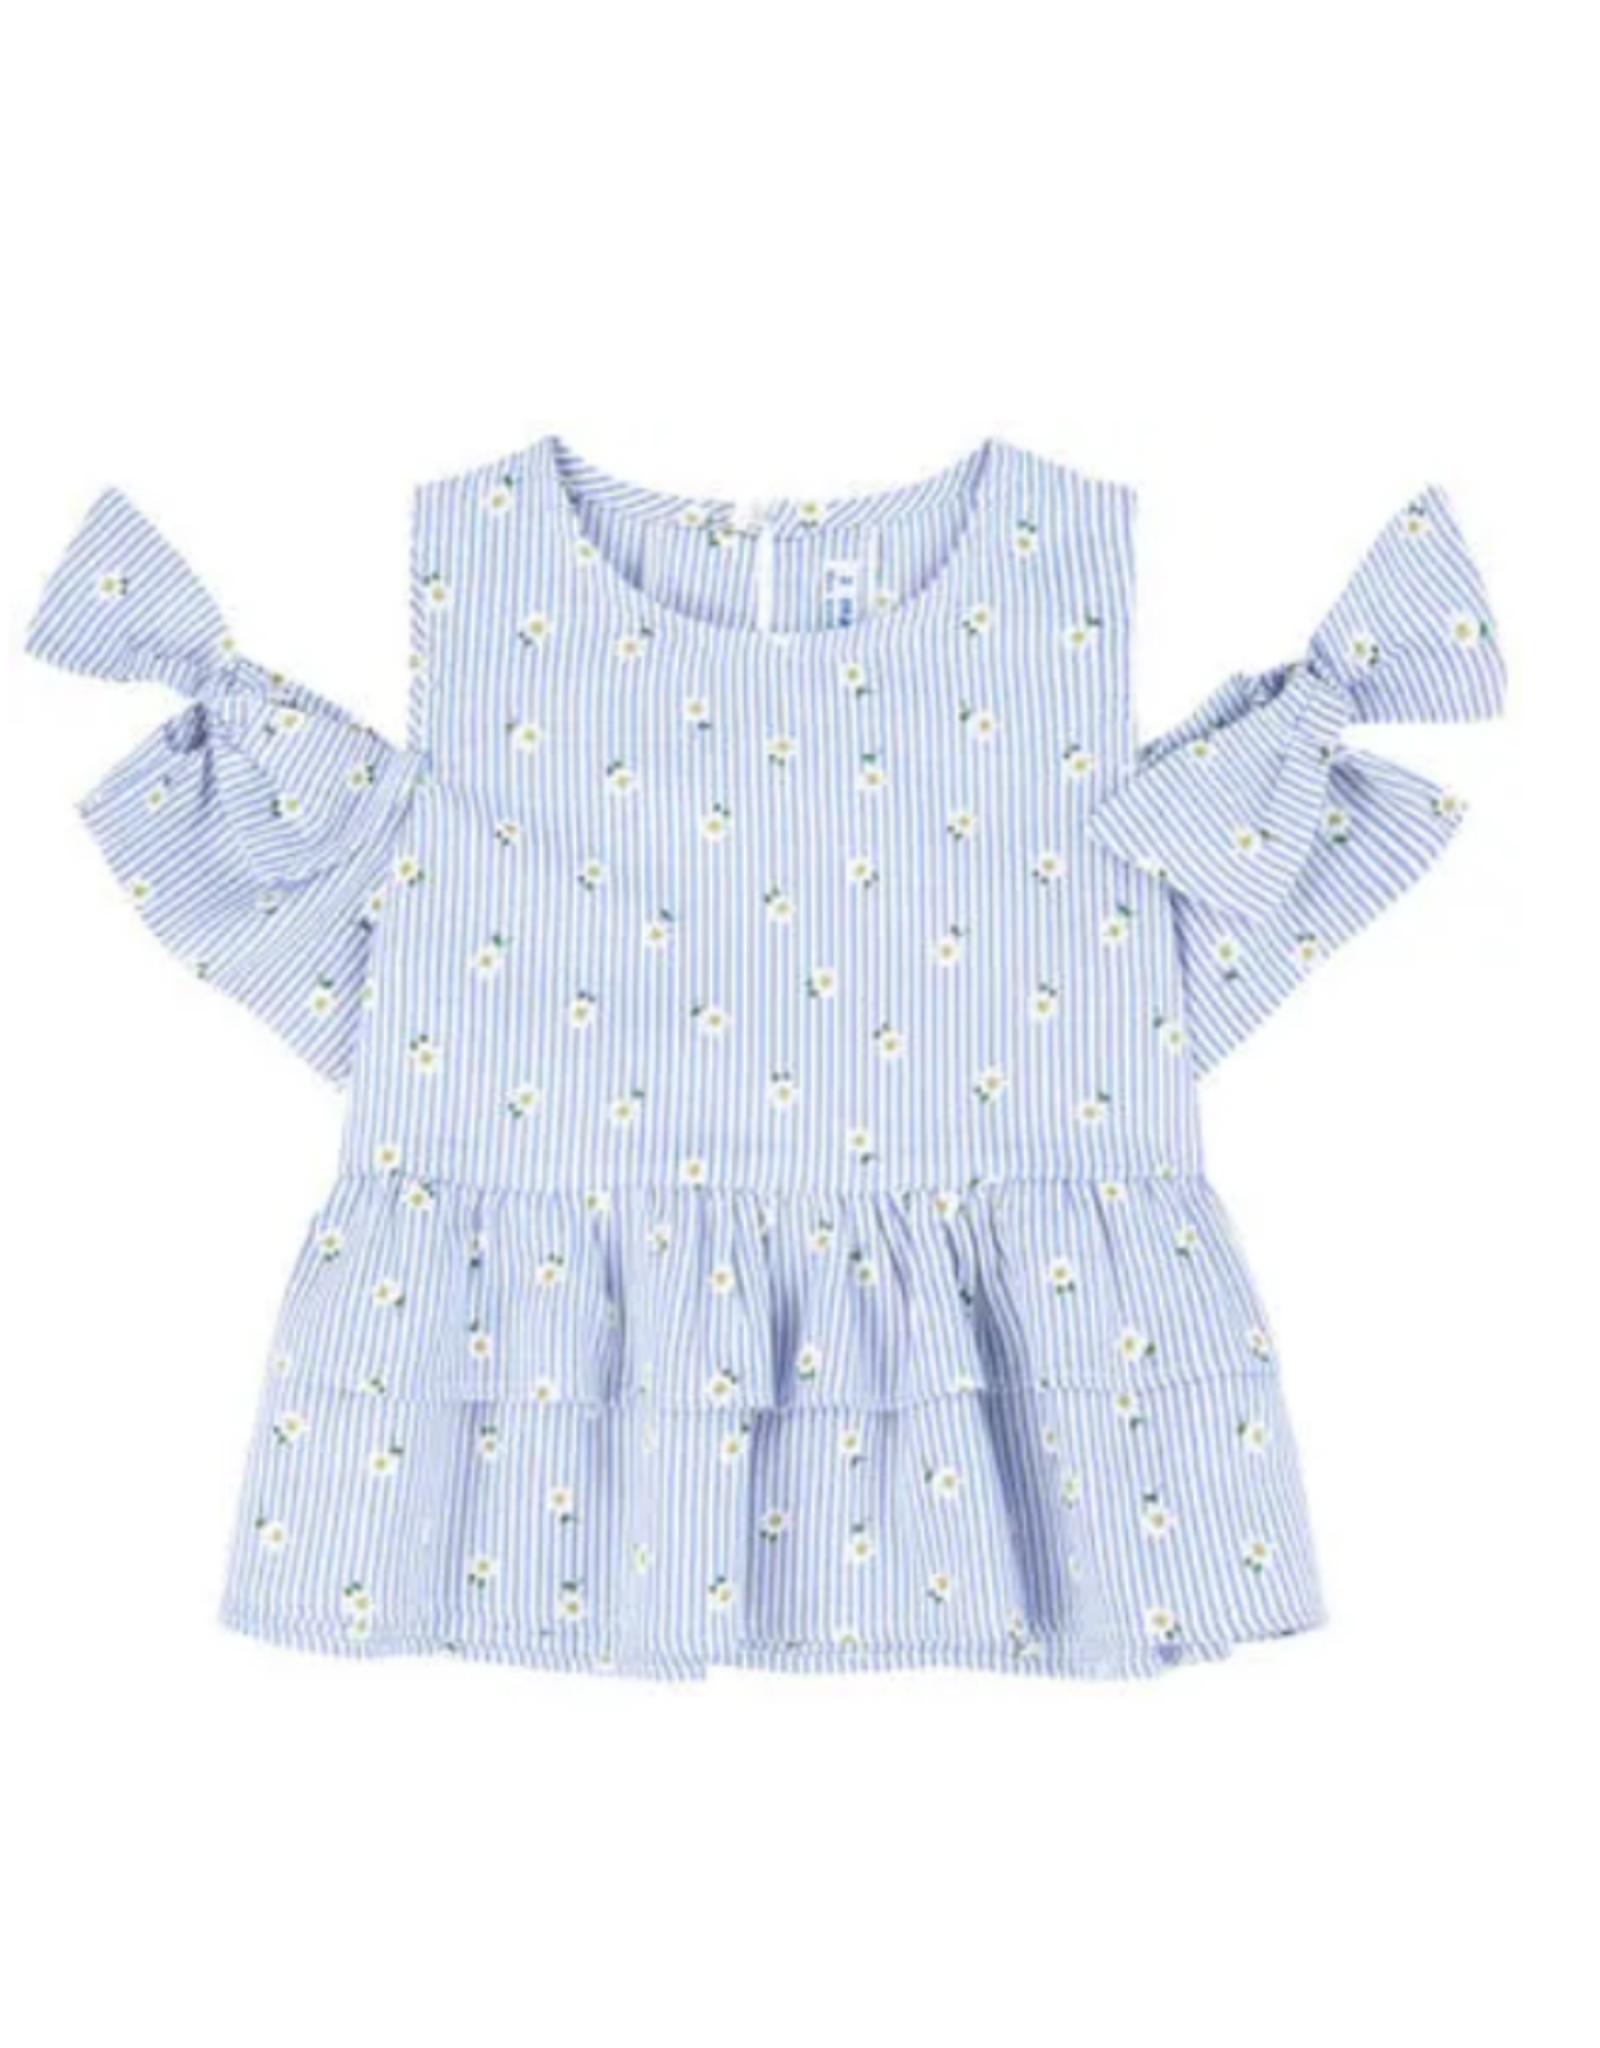 Mayoral Blue And White Striped Top With Sunflowers